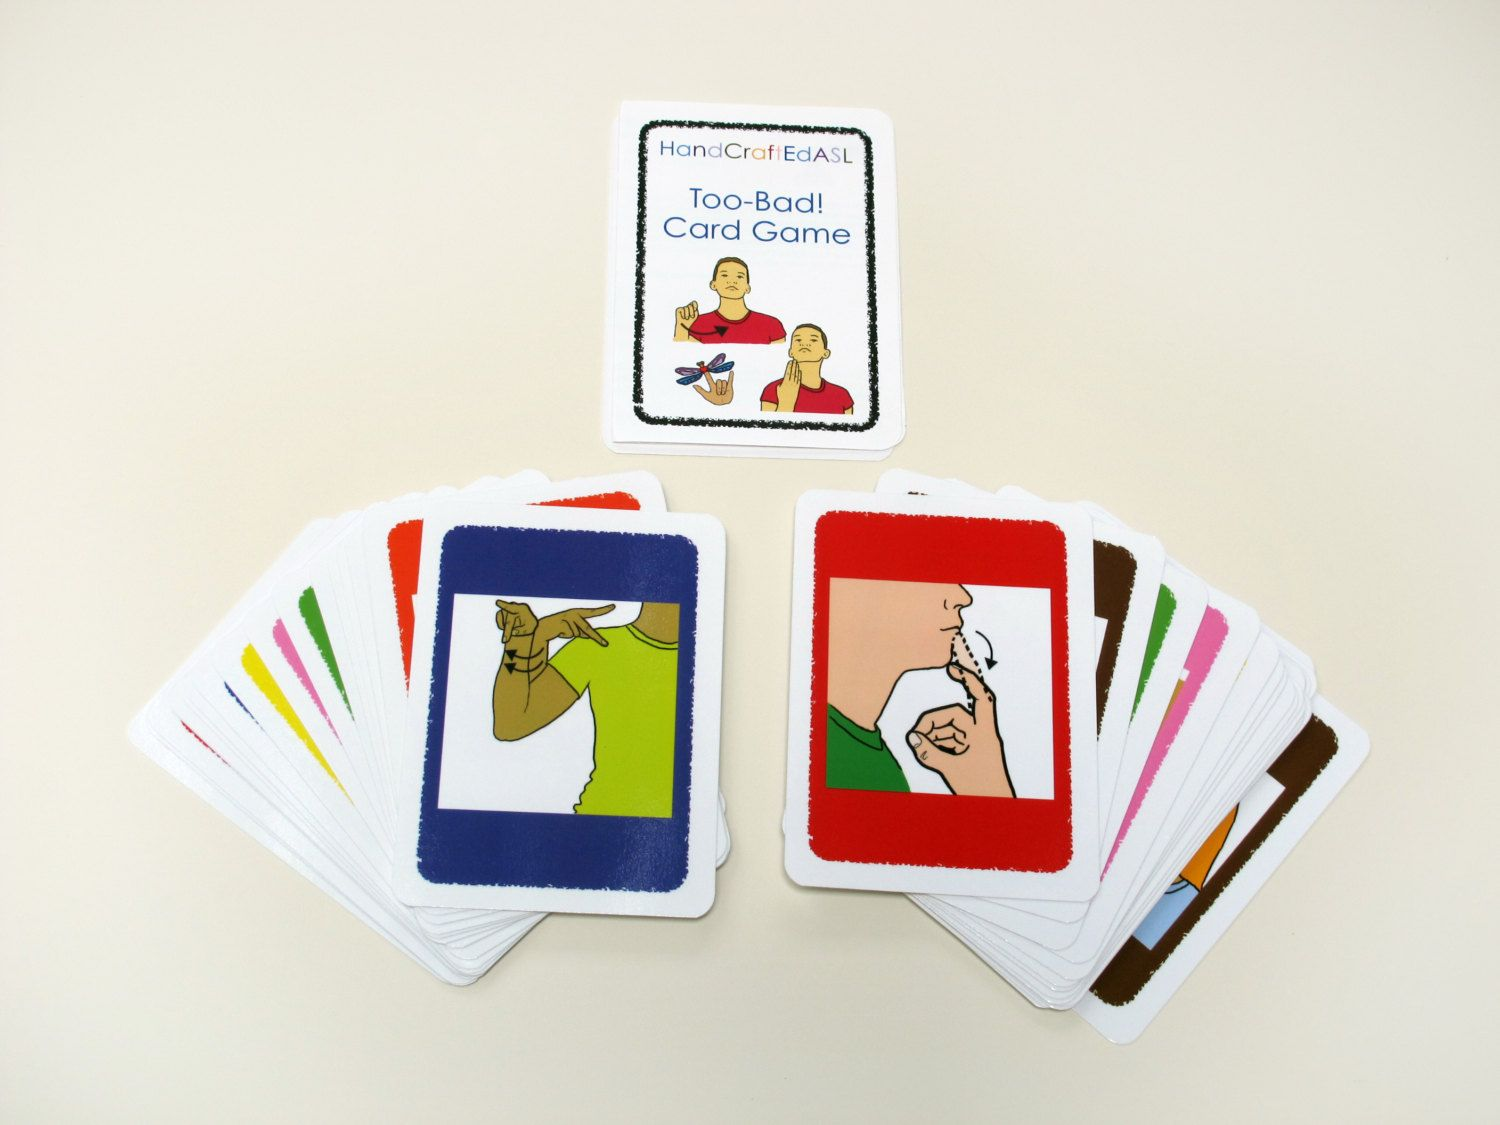 Too Bad Asl Game Cards Color Matching 10 00 Via Etsy